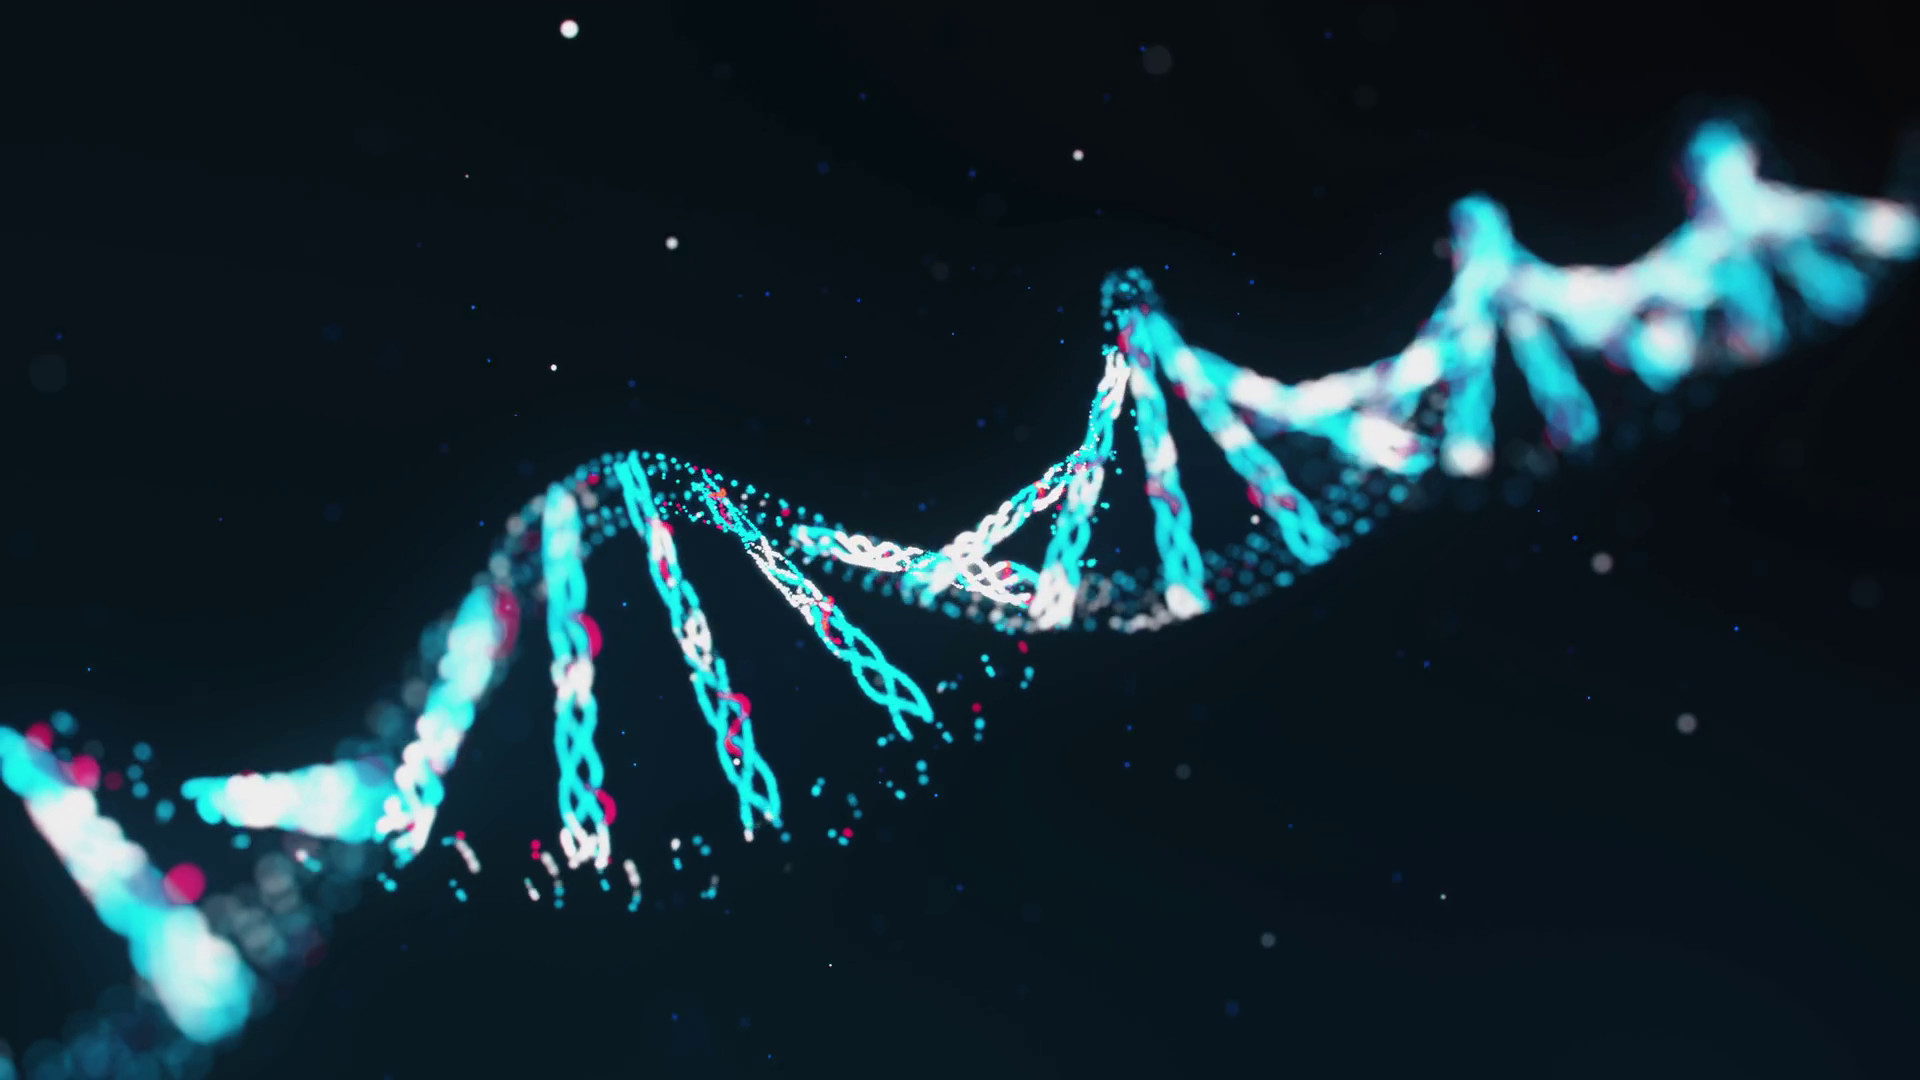 Best 3d Animated Wallpapers For Android Dna Double Helix Wallpaper 69 Images